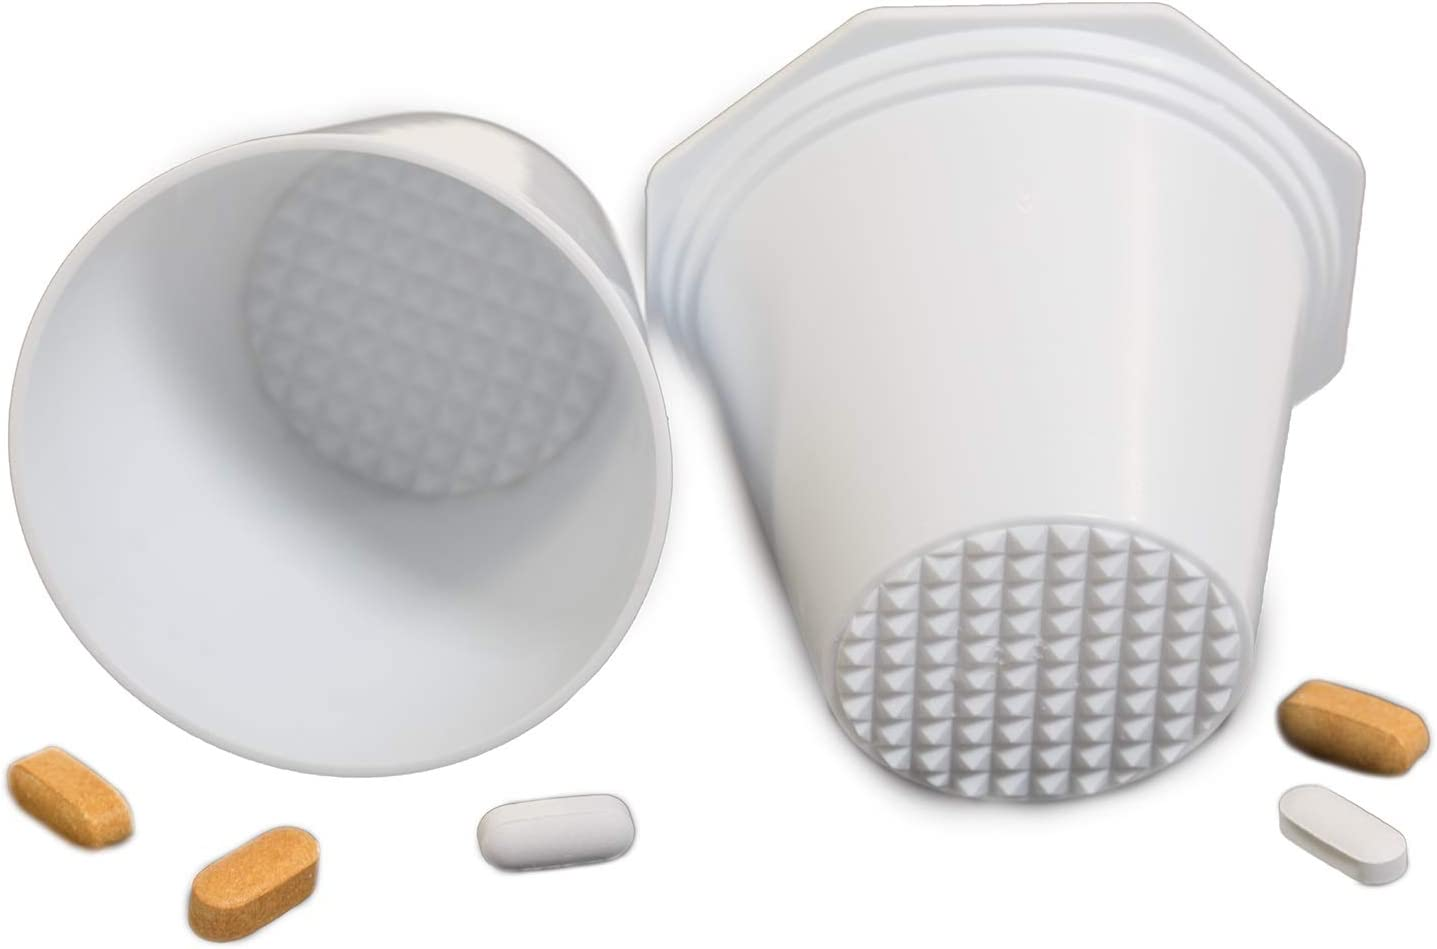 PILL CRUSHER, GRINDER - for Larger Pills, Vitamins or Multiple Tablets - Great for both Humans and Pets | Easy to use and Clean | QUICKLY Add Liquids for drinking - by MegaPill